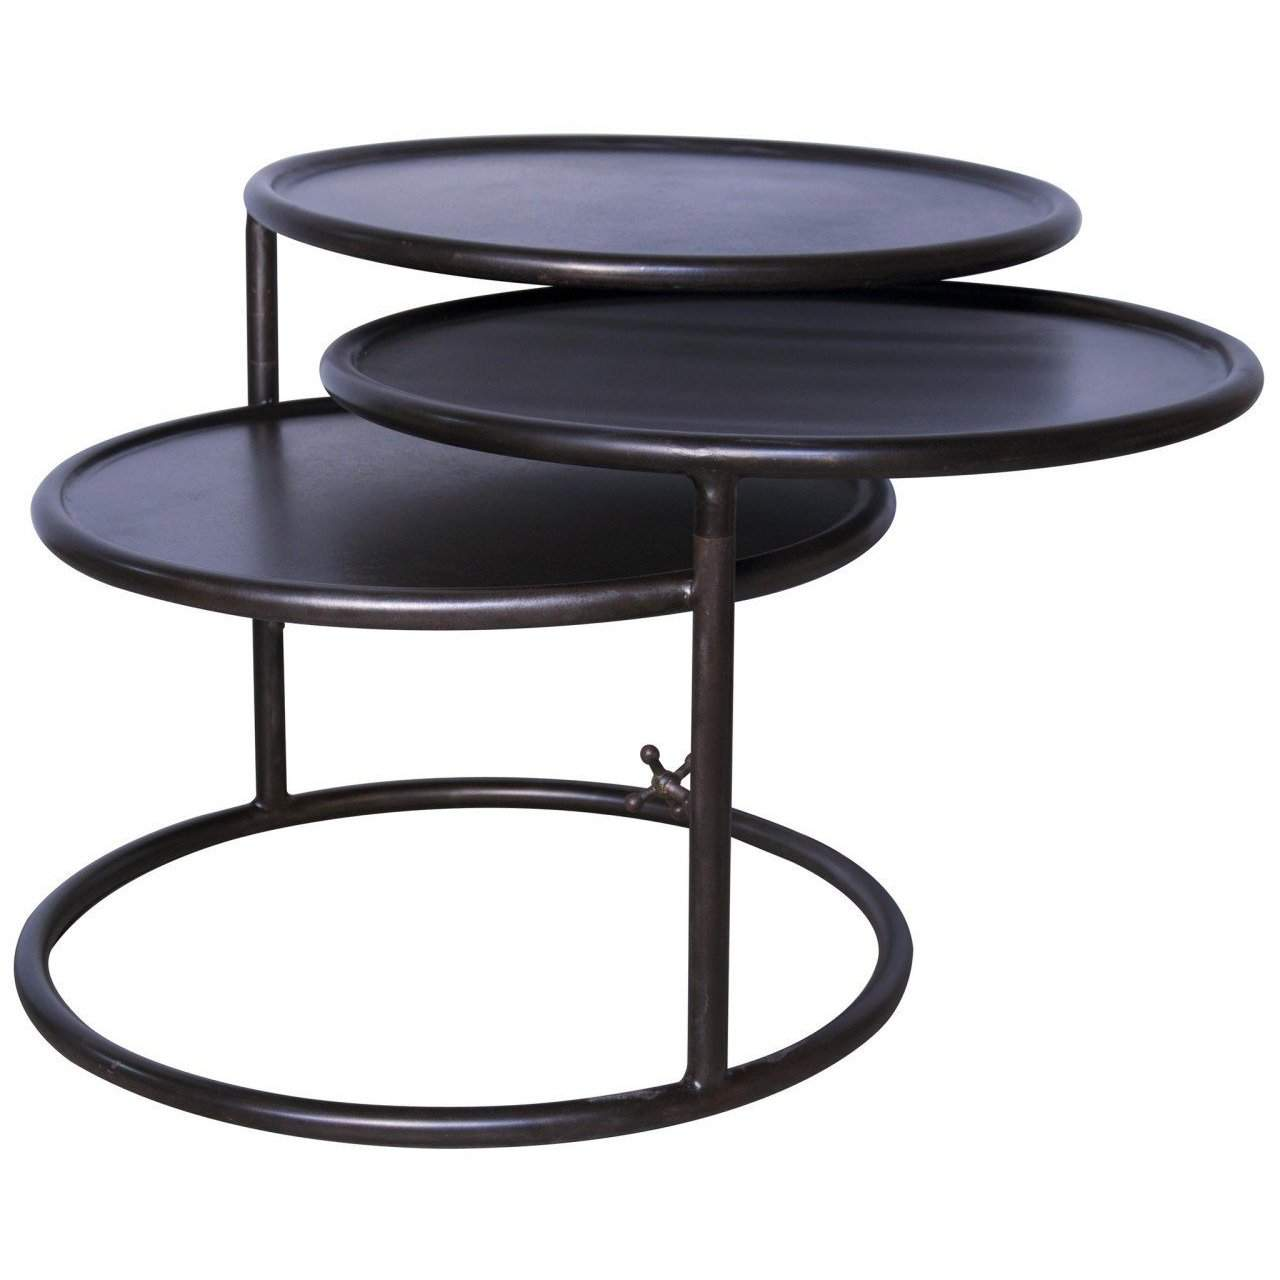 Noir Baxter Side Table - Blue Hand Home